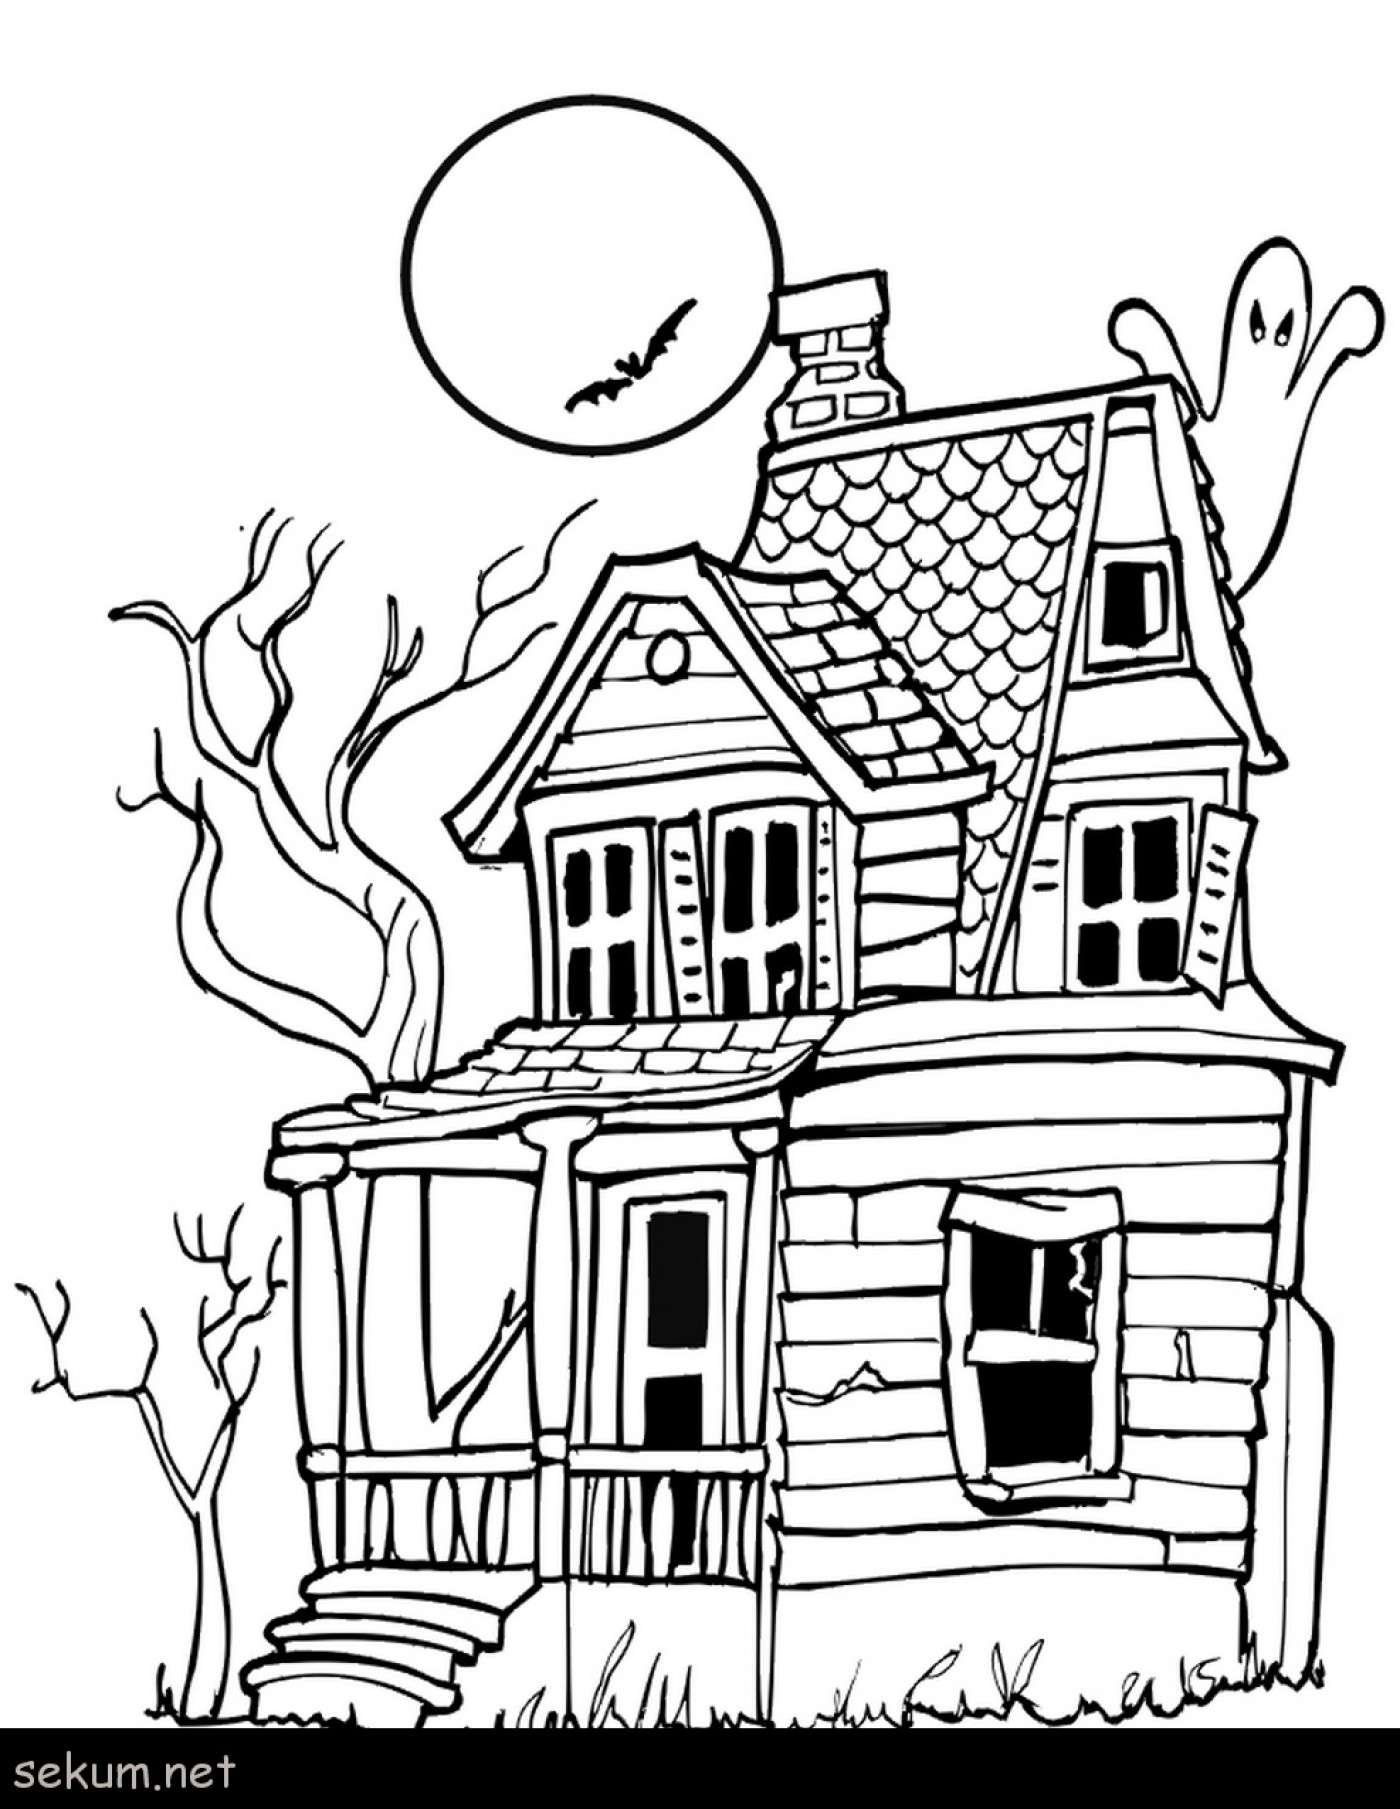 25 Awesome Image Of Haunted House Coloring Pages Entitlementtraprhentitlementtrap: Ghost House Coloring Pages At Baymontmadison.com